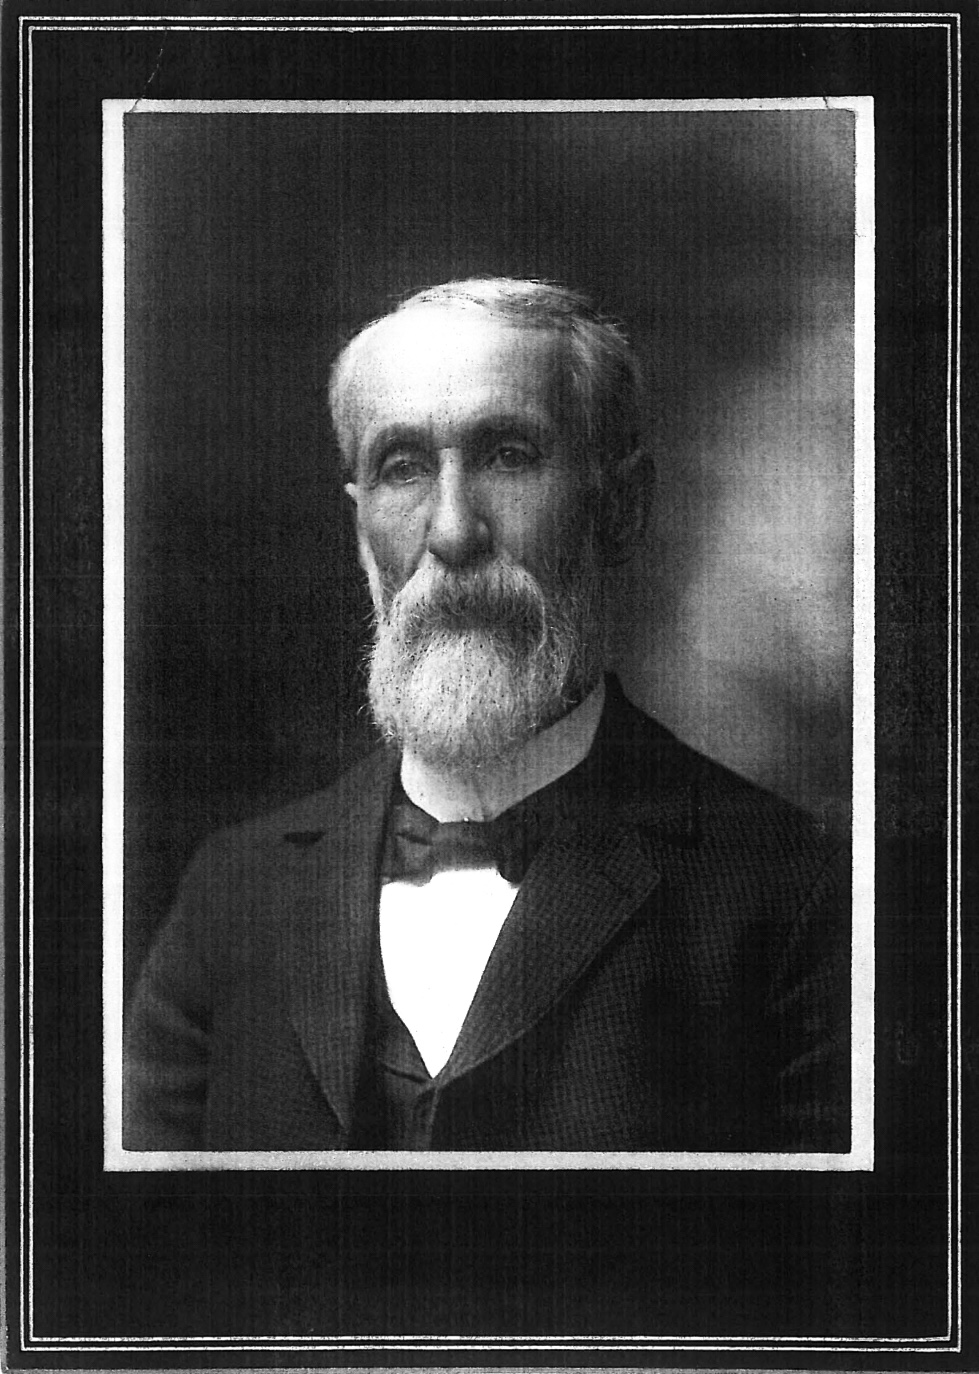 1883-1911 - John S. Roome, M.D. built the home for his second wife, Blanche Cora Bigelow (the best name ever!). John was the surgeon for the local town and railway. Calmar was a major railroad hub at the time of the Milwaukee Road between Marquette and Mason City. The Roomes had a daughter Kathie Blanche and a son John Sydney. John served for two terms as Mayor of Calmar, and for fifteen years as a member of the City Council.  He practiced medicine for over fifty years and was regarded as one of the State's medical authorities. He retired to Los Angeles, California in 1911. John didn't look terribly happy in his portrait but he had a fabulous beard.